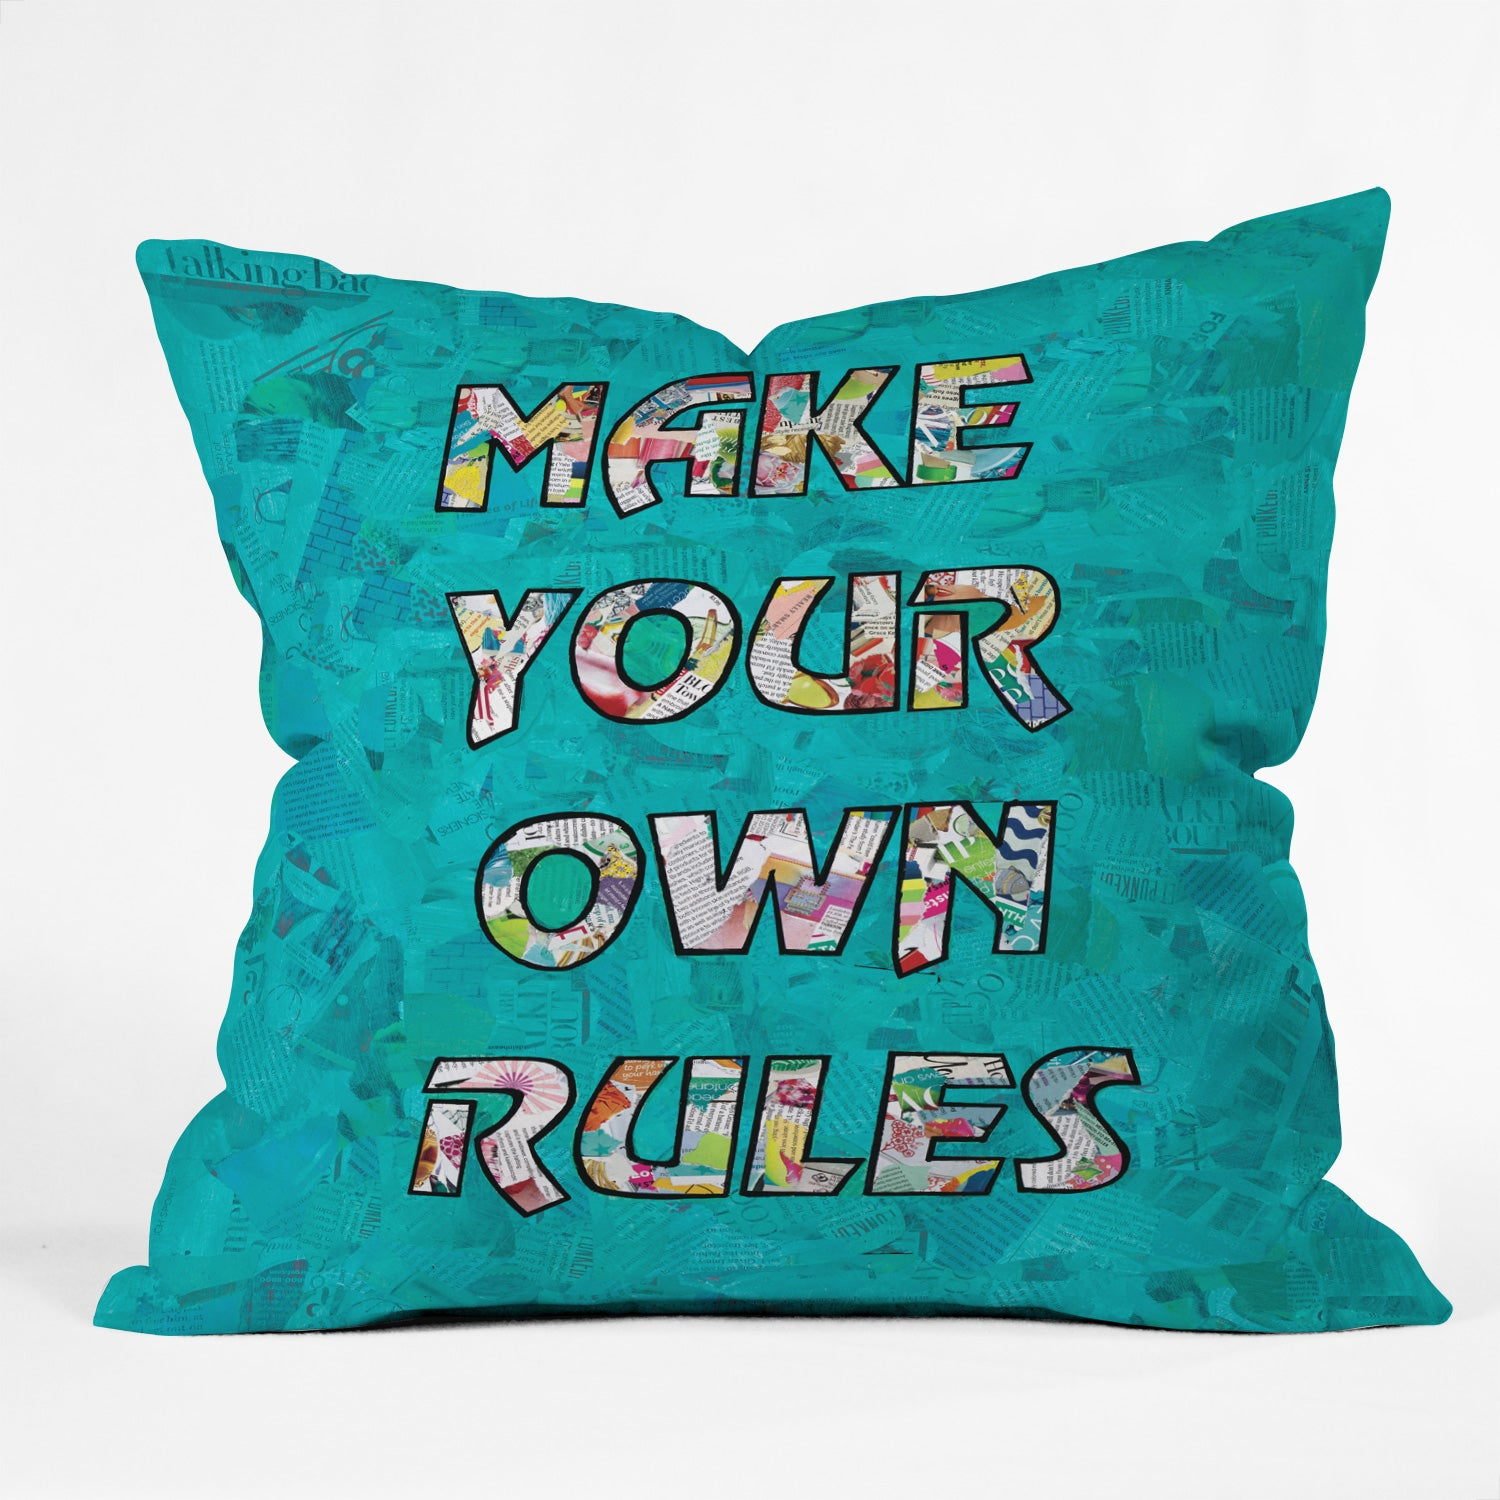 make your own rules outdoor throw pillow amy smith